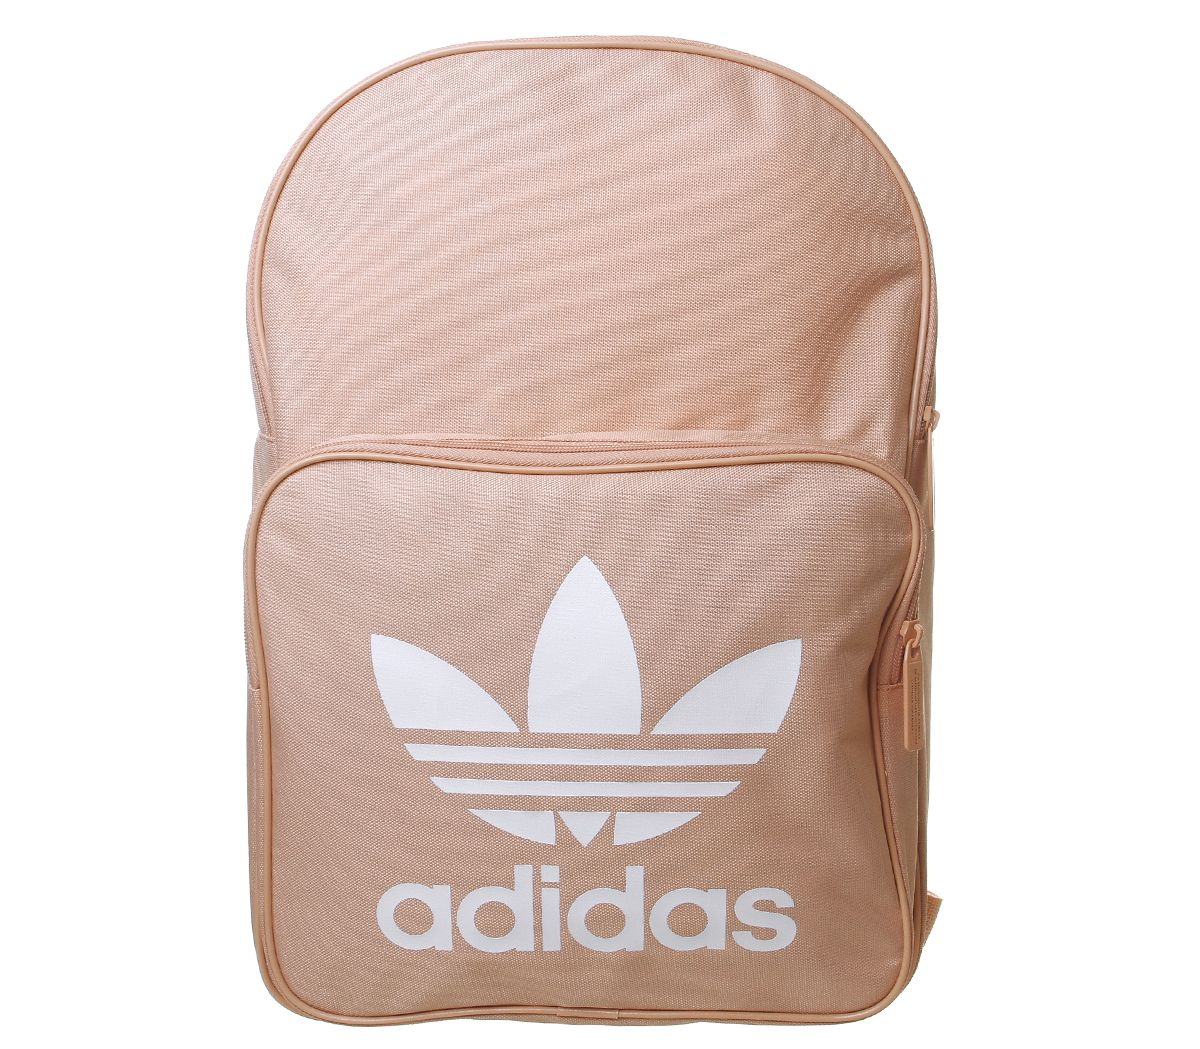 4d39430c4 adidas Classic Trefoil Backpack Dust Pink White - Accessories